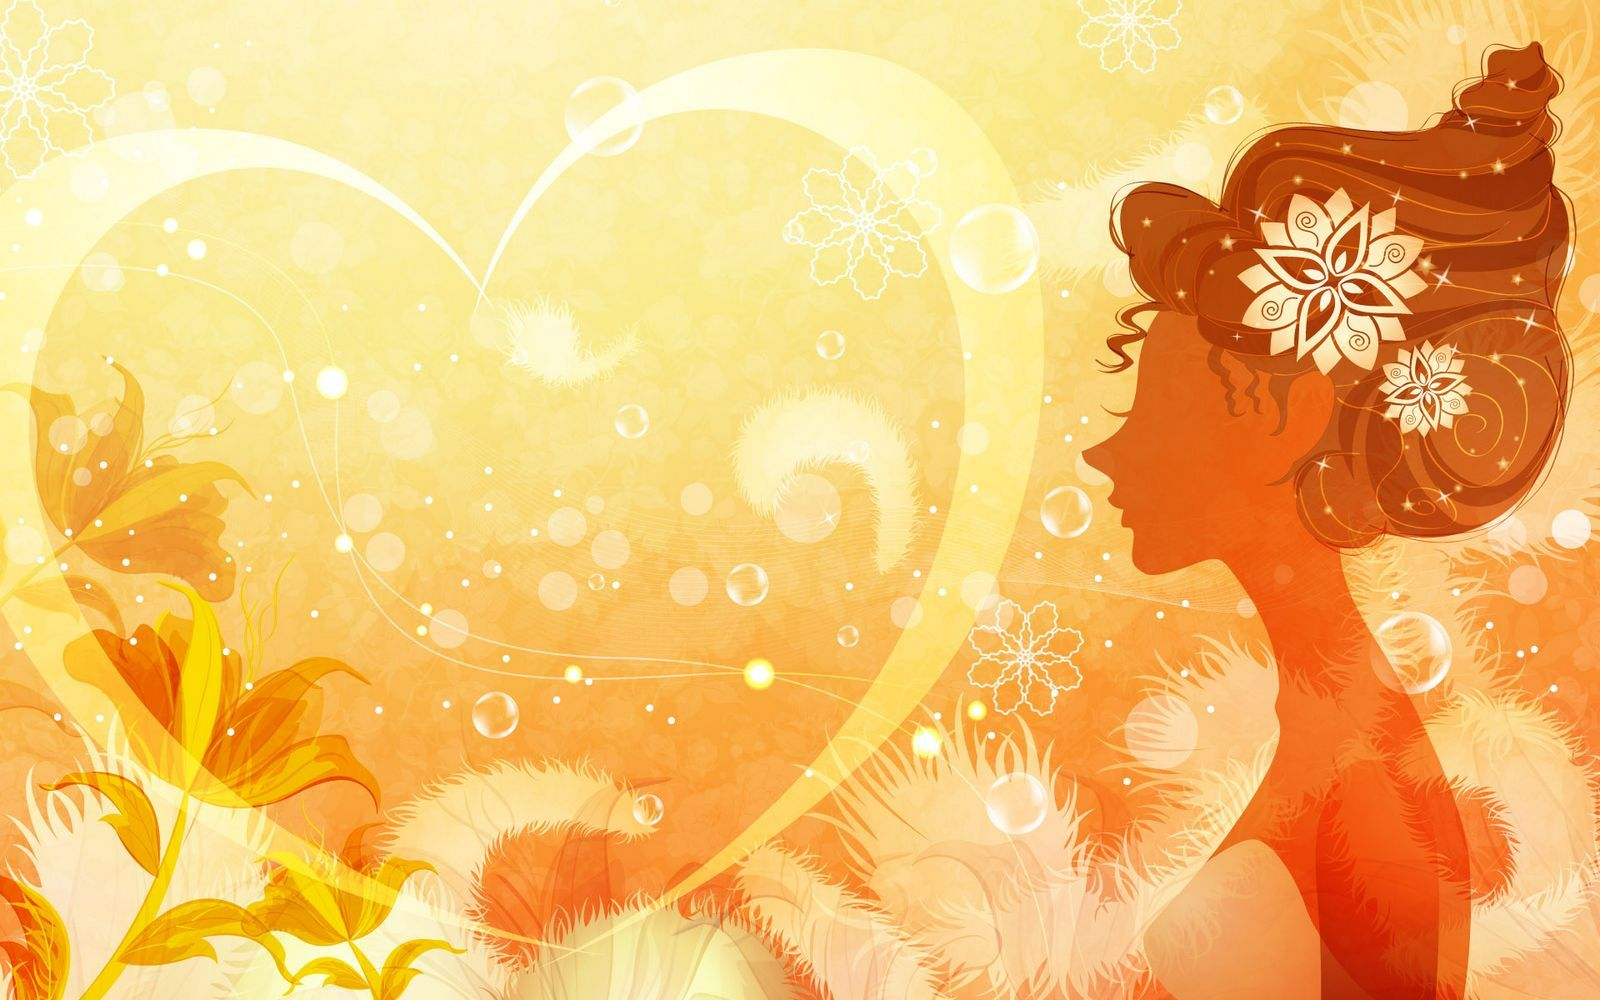 Wallpaper About Love With Quotes Vector Girls Illustrated Wallpapers